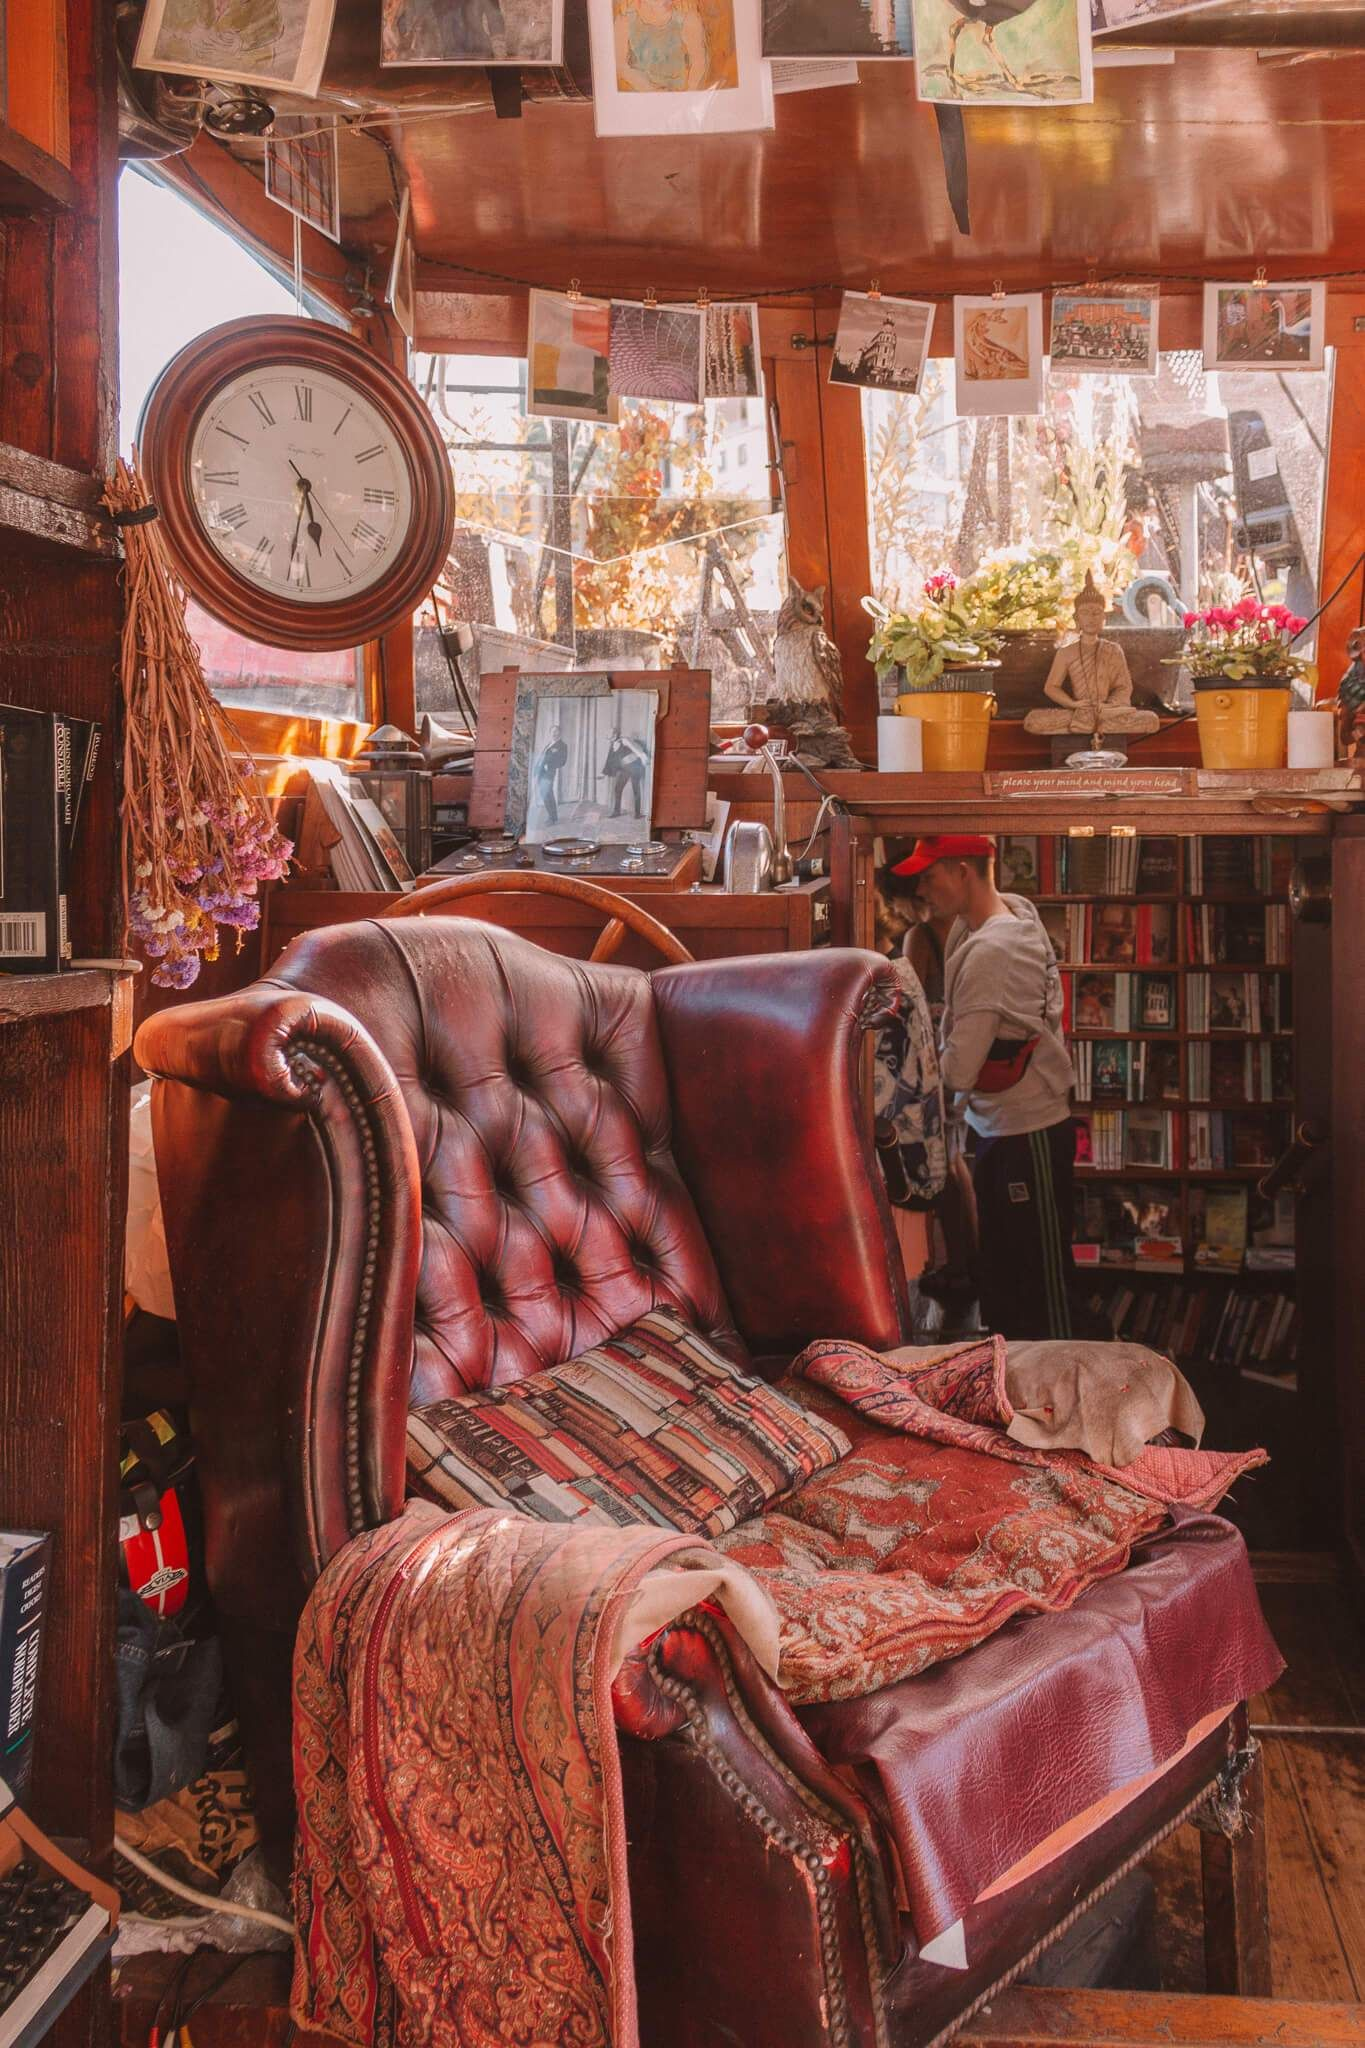 Word on the Water. These are 15 of the most beautiful bookshops in London. London is home to some of the most beautiful bookshops in the world. These are all independent bookshops in London and they stock a variety of old and new, fiction and non-fiction etc. Perfect for bookworms in London! #whatshotblog #bookshopporn #bookstagram #bookshops #travelLondon